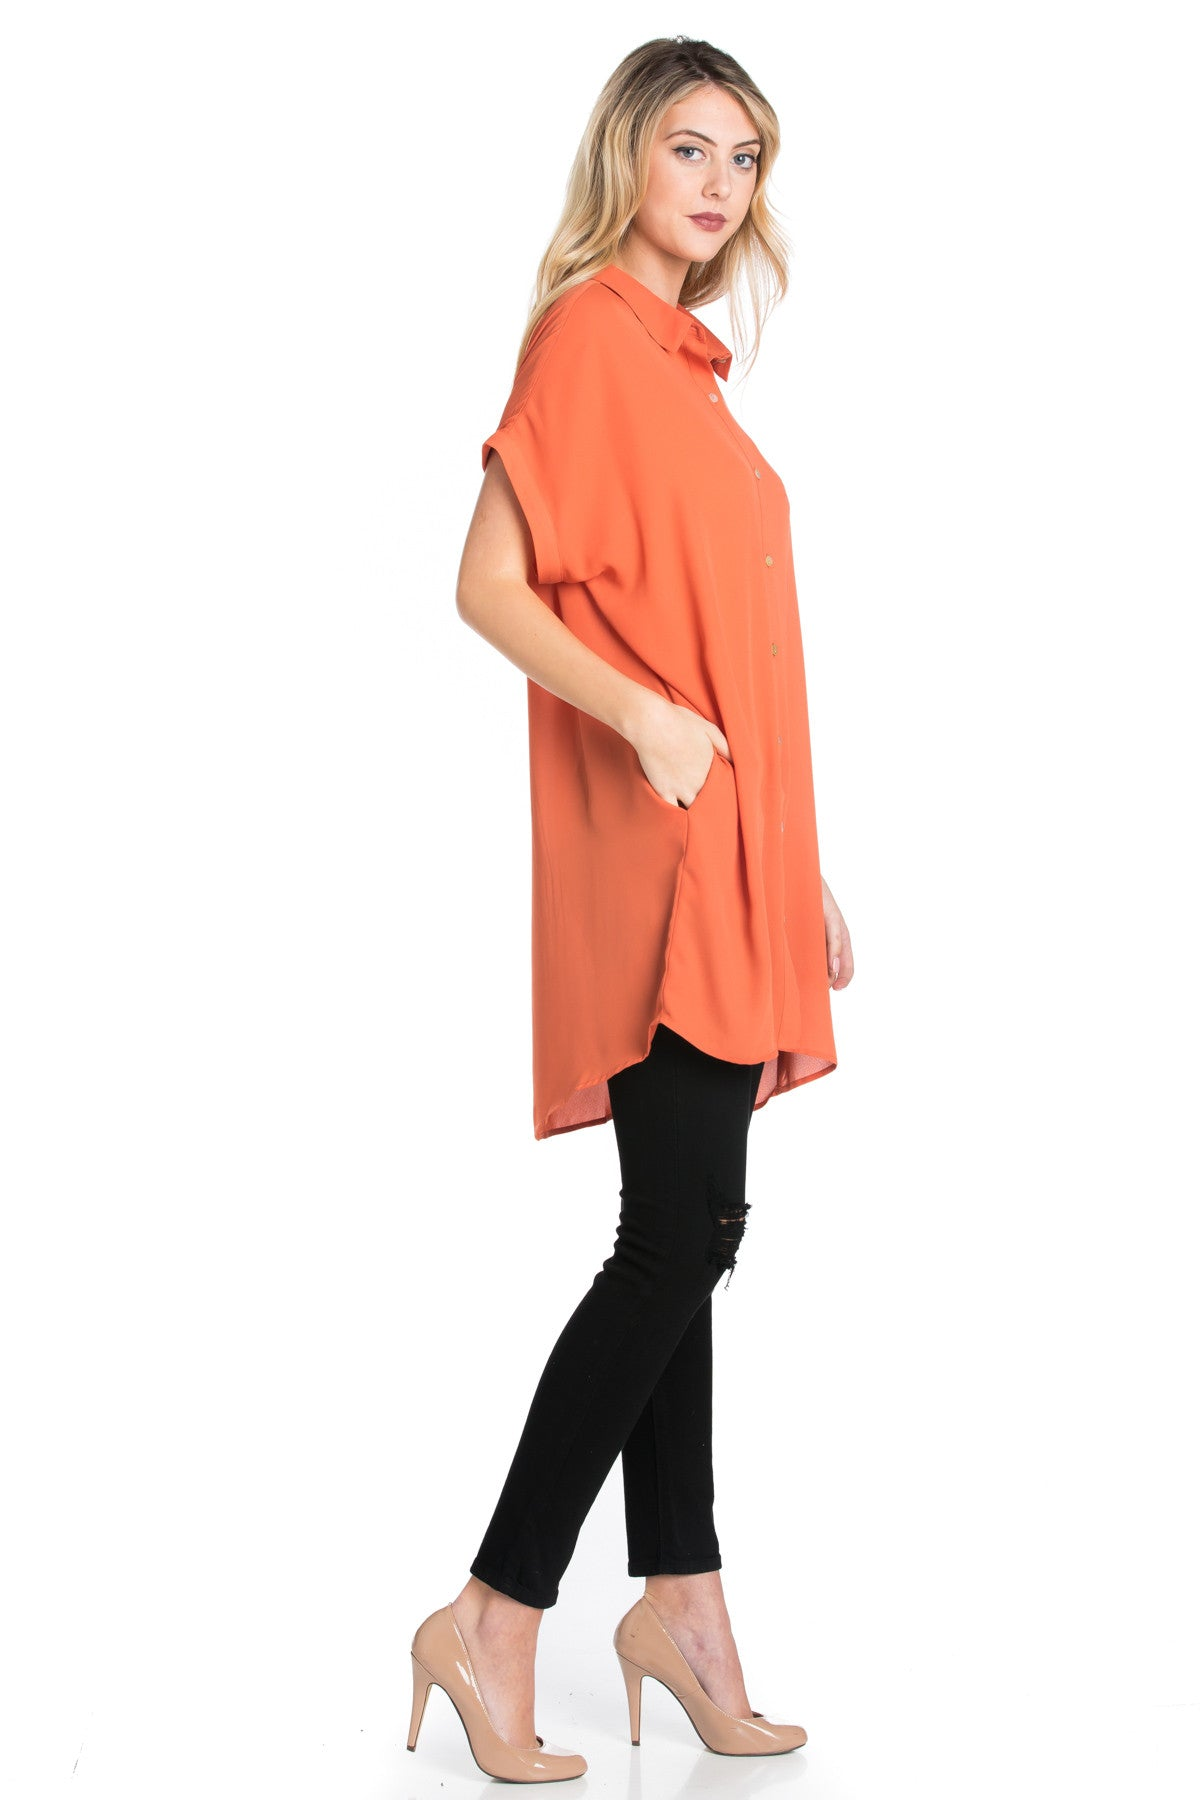 Short Sleeve Longline Button Down Chiffon Top in Sun Coral - Tops - My Yuccie - 14